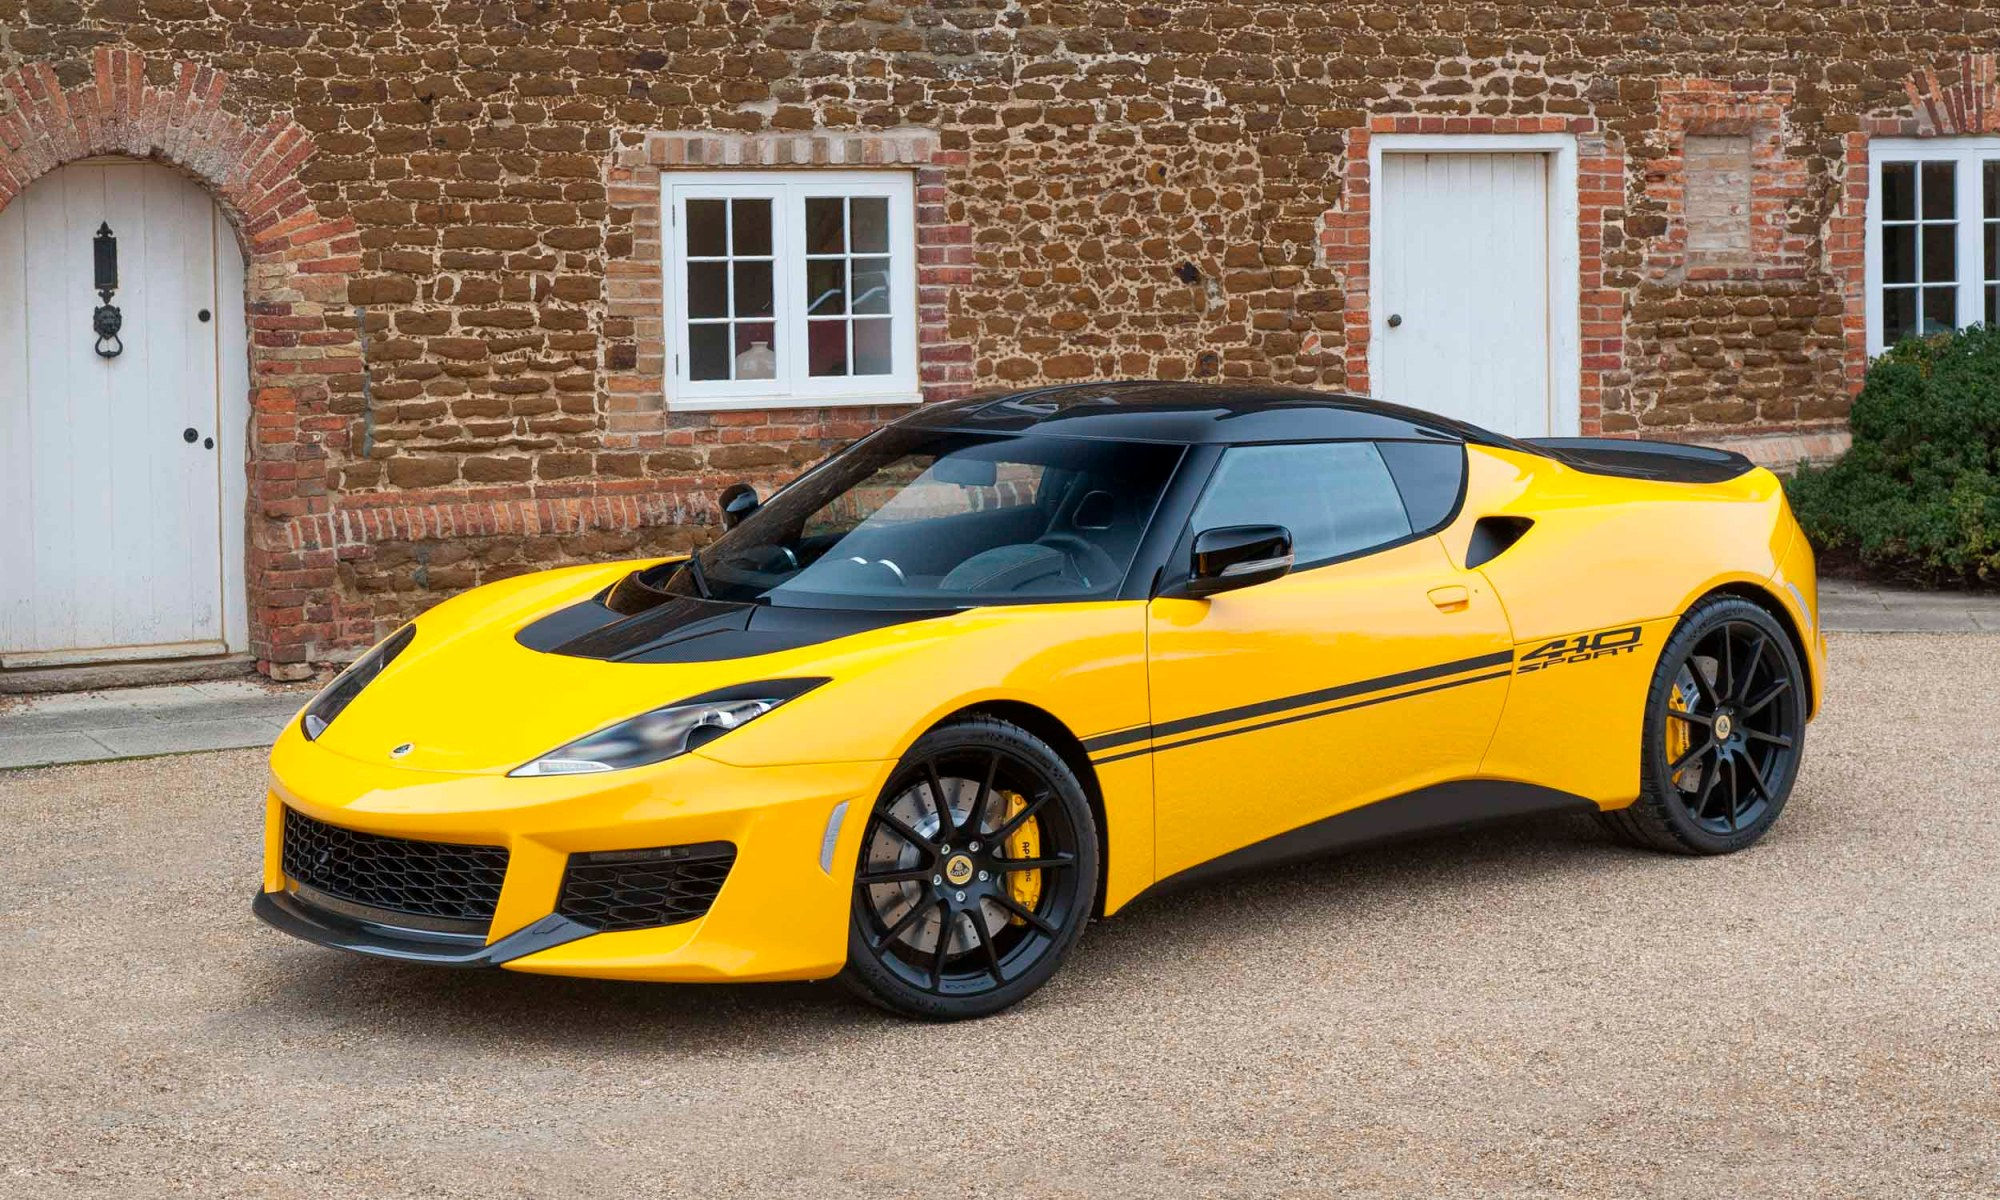 hight resolution of issue lotus cars limited lotus is recalling certain 2018 lotus evora vehicles due to an assembly error